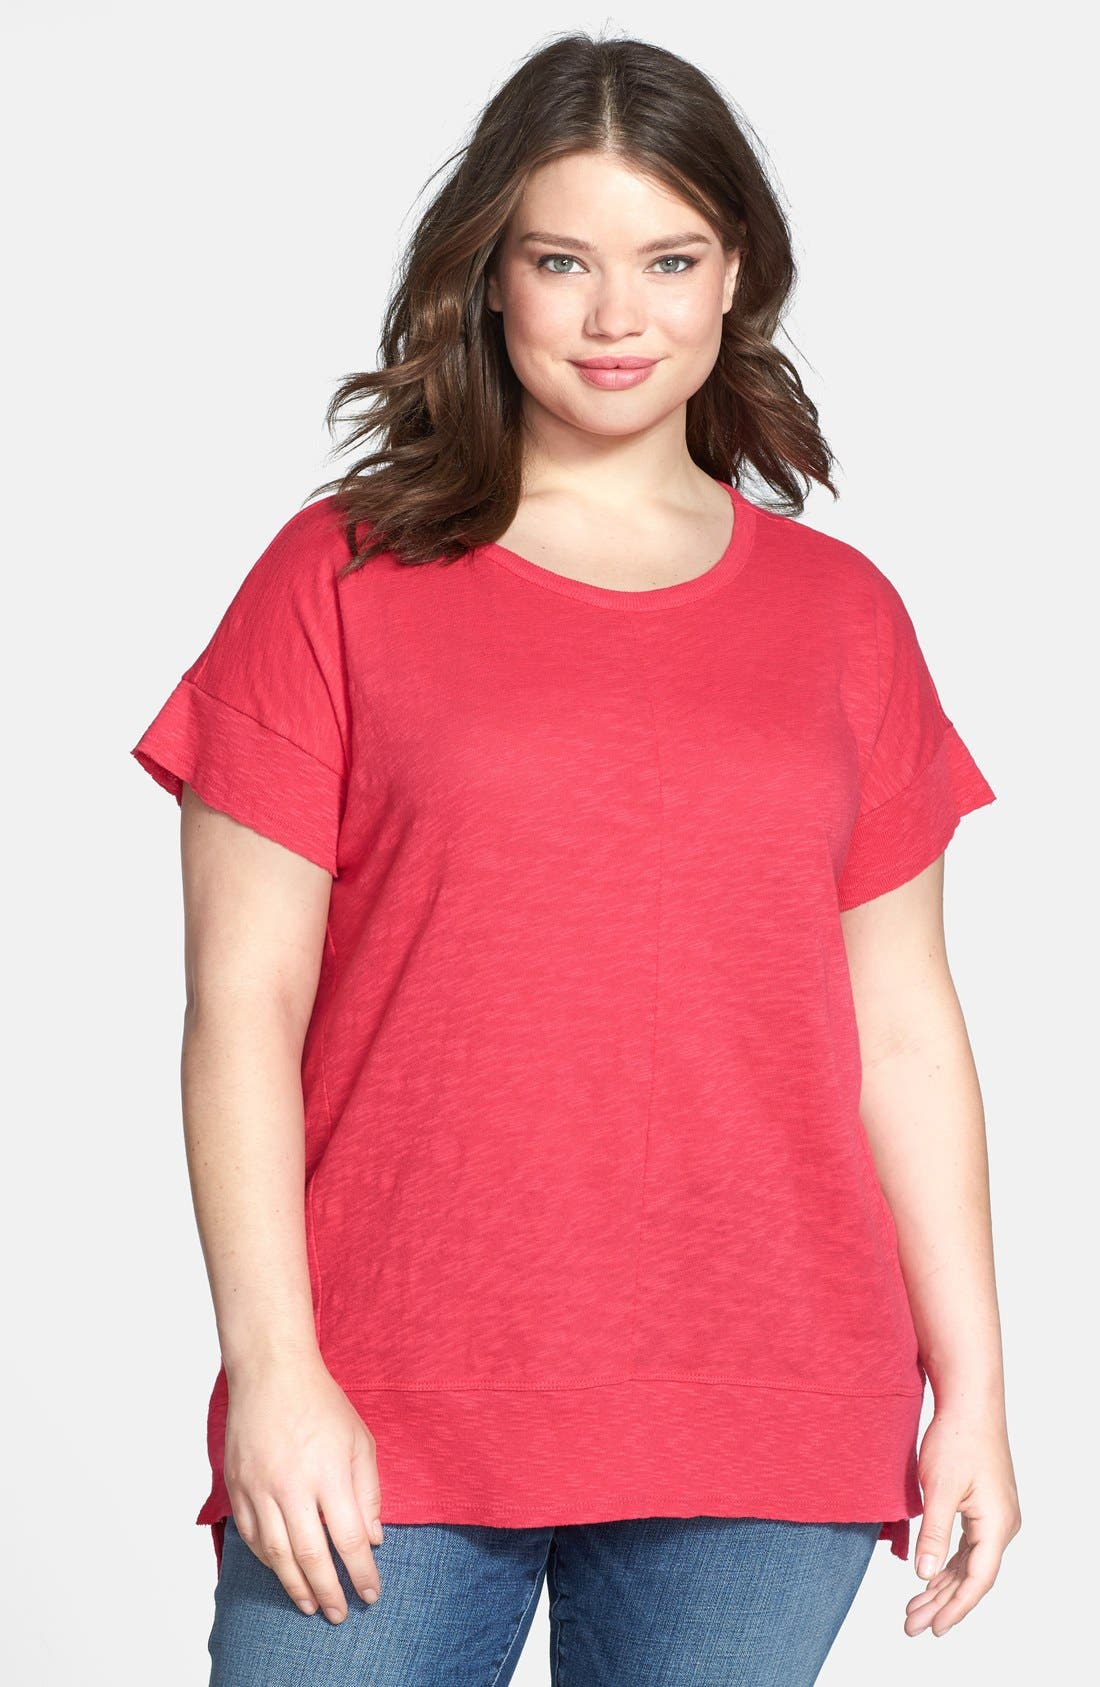 Alternate Image 1 Selected - DKNY Jeans 'East West Slouchy Summer' Knit Top (Plus Size)